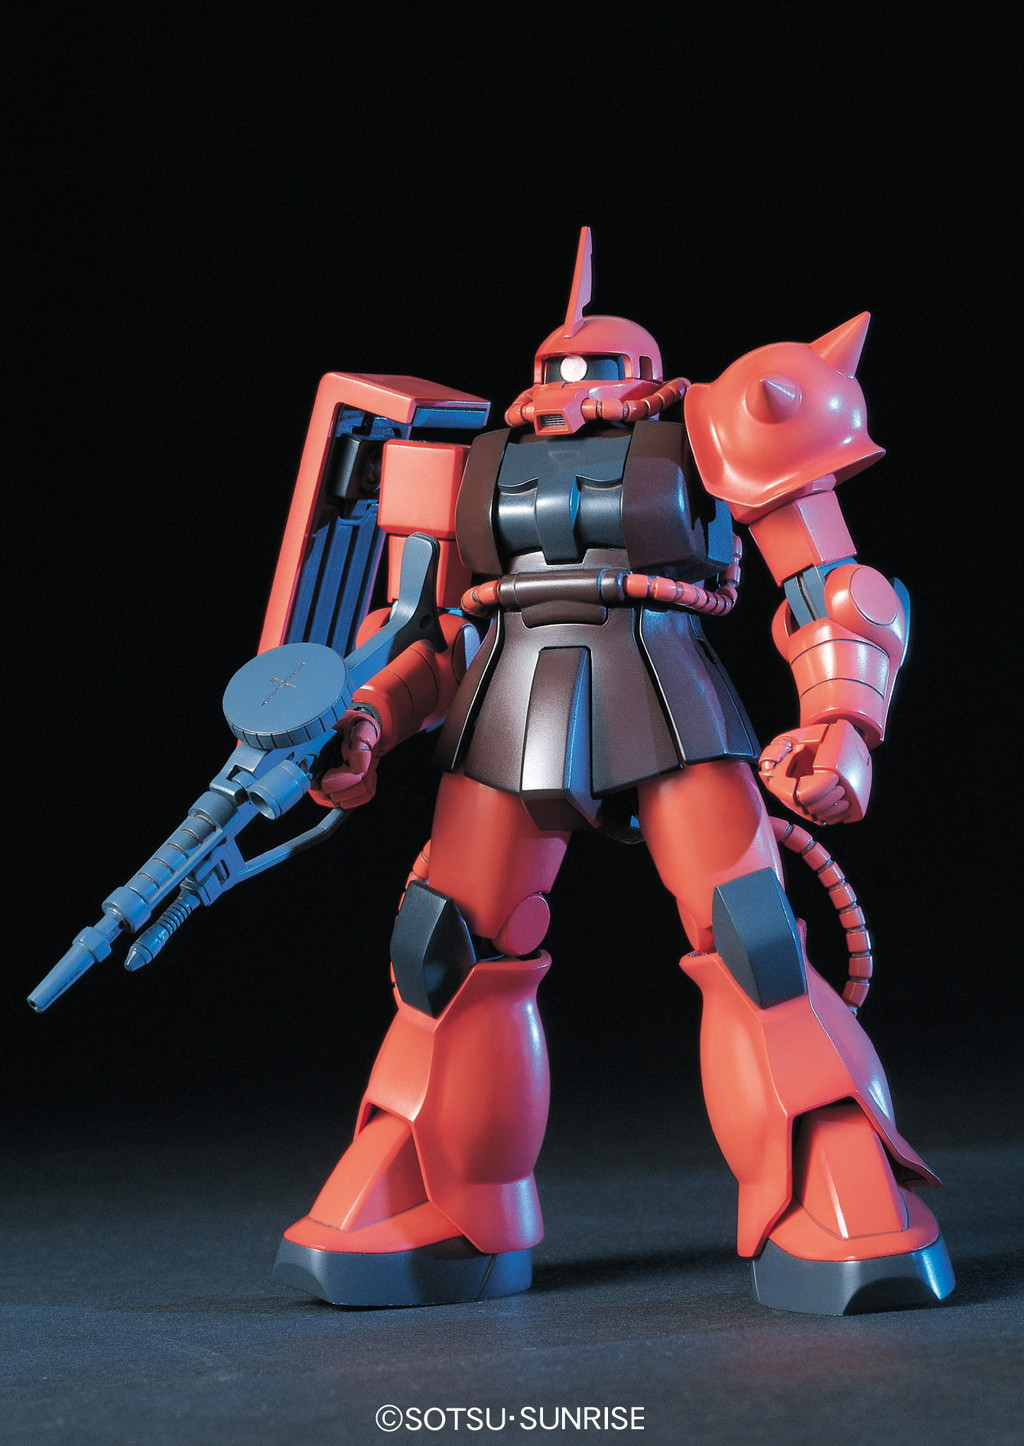 HGUC 1/144 MS-06S シャア専用ザク [Zaku II Commander Type (Char Aznable custom)] 5058888 0112814 4573102588883